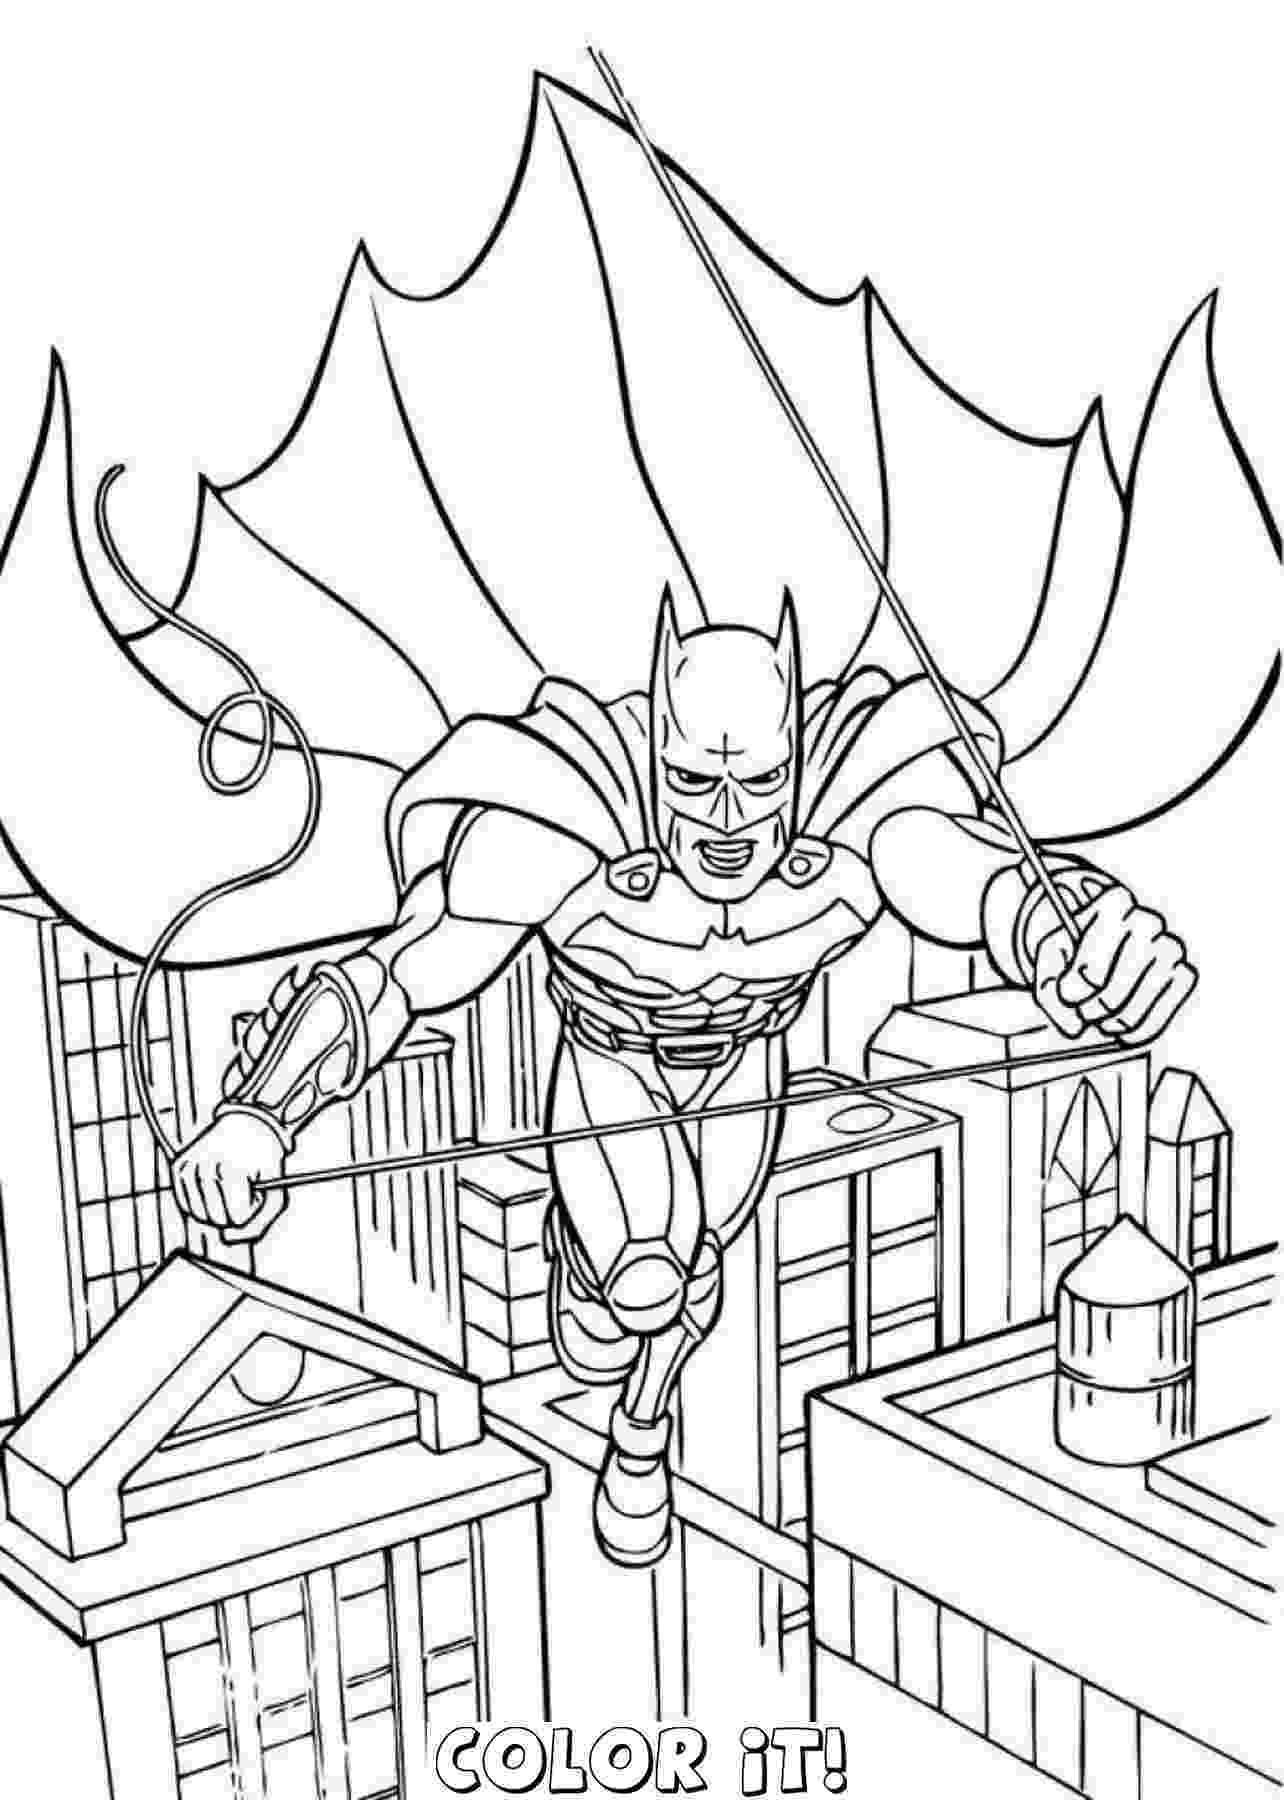 free printable coloring pages lego batman lego batman coloring pages to download and print for free batman printable lego coloring free pages